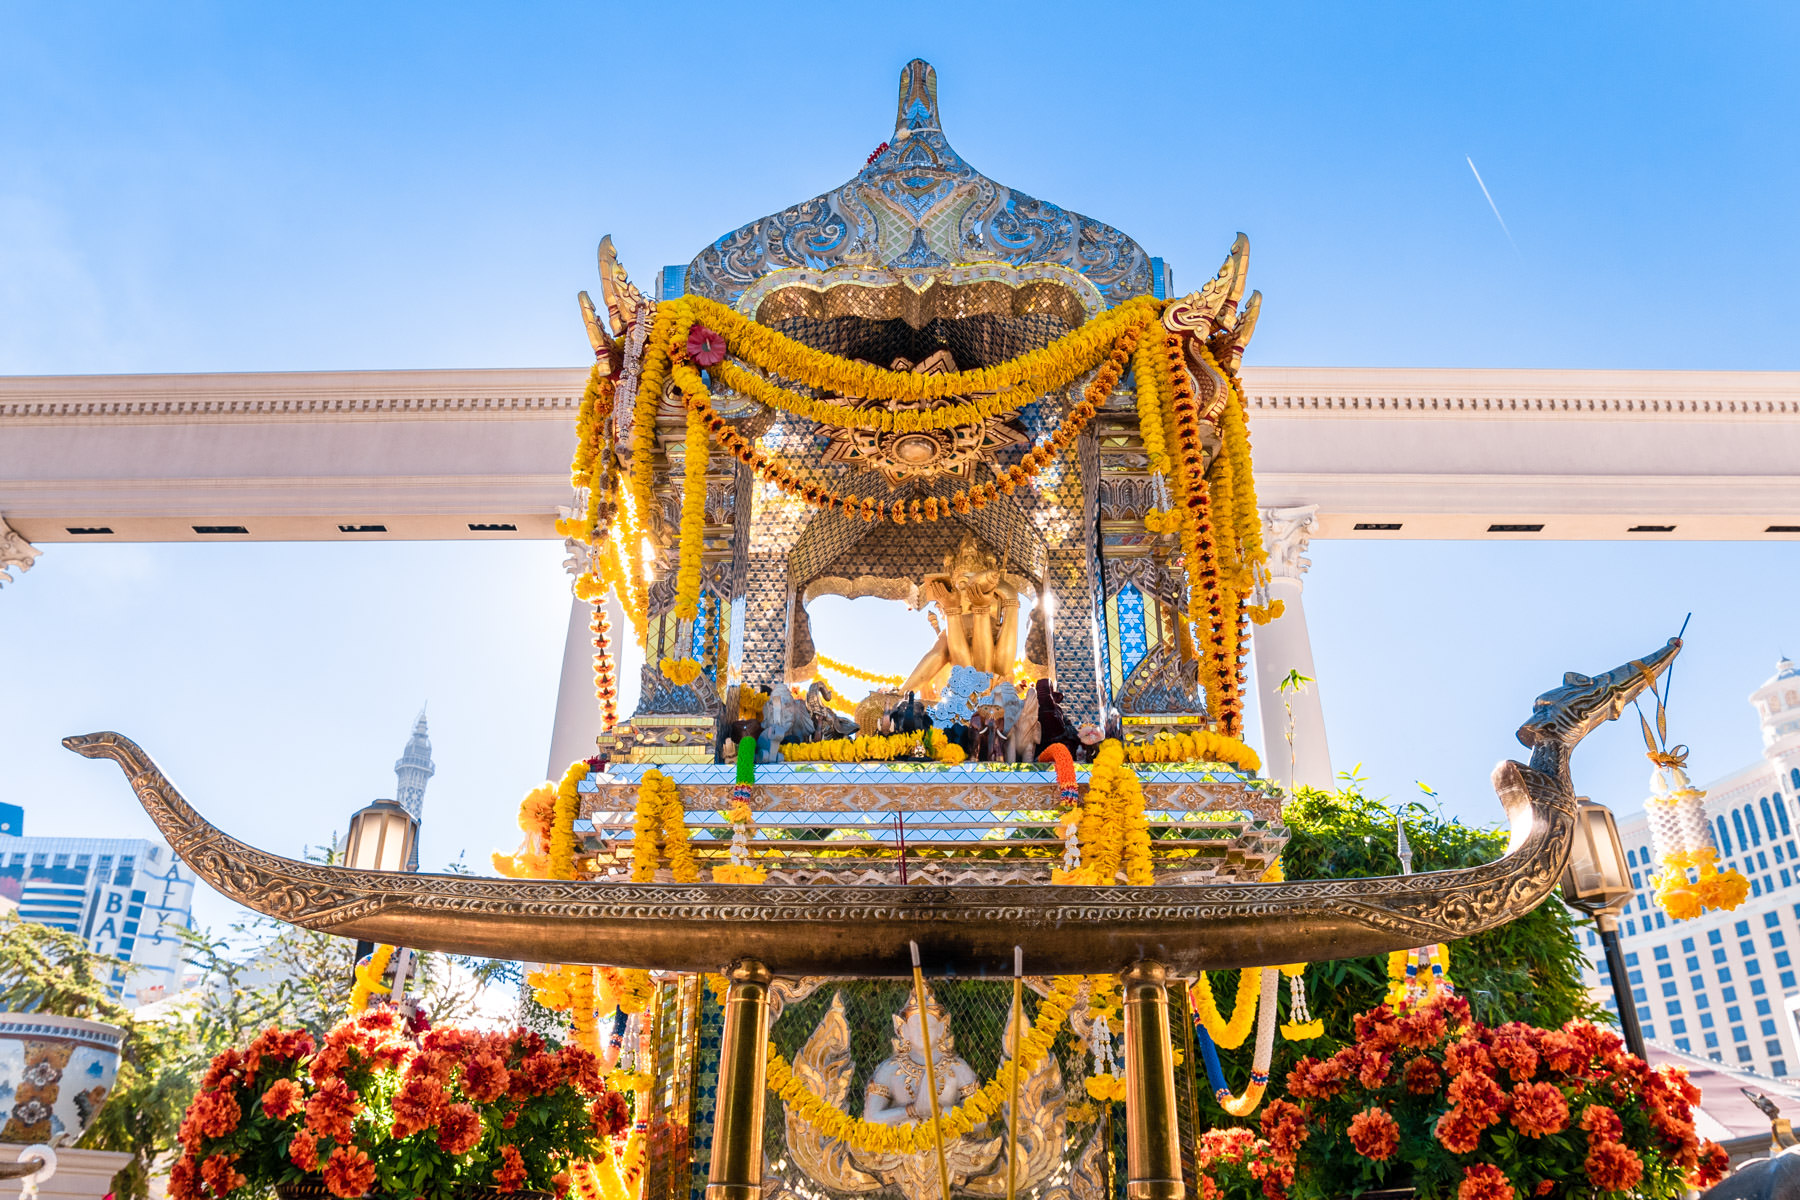 The Erawan Shrine (or Shrine of the Four-Faced Brahma) at Caesars Palace, Las Vegas, was built in 1984 and is a replica of the original in Bangkok, Thailand. It was donated by newspaper tycoons Mr. and Mrs. Kamphol Vacharaphol and Mr. Yip Hon, a prominent figure in Hong Kong and is considered a Hindu holy site. Visitors express gratitude for wishes granted by offering flowers, incense, money (which Caesars donates to charities in Thailand) or by placing small wooden elephants upon the shrine.